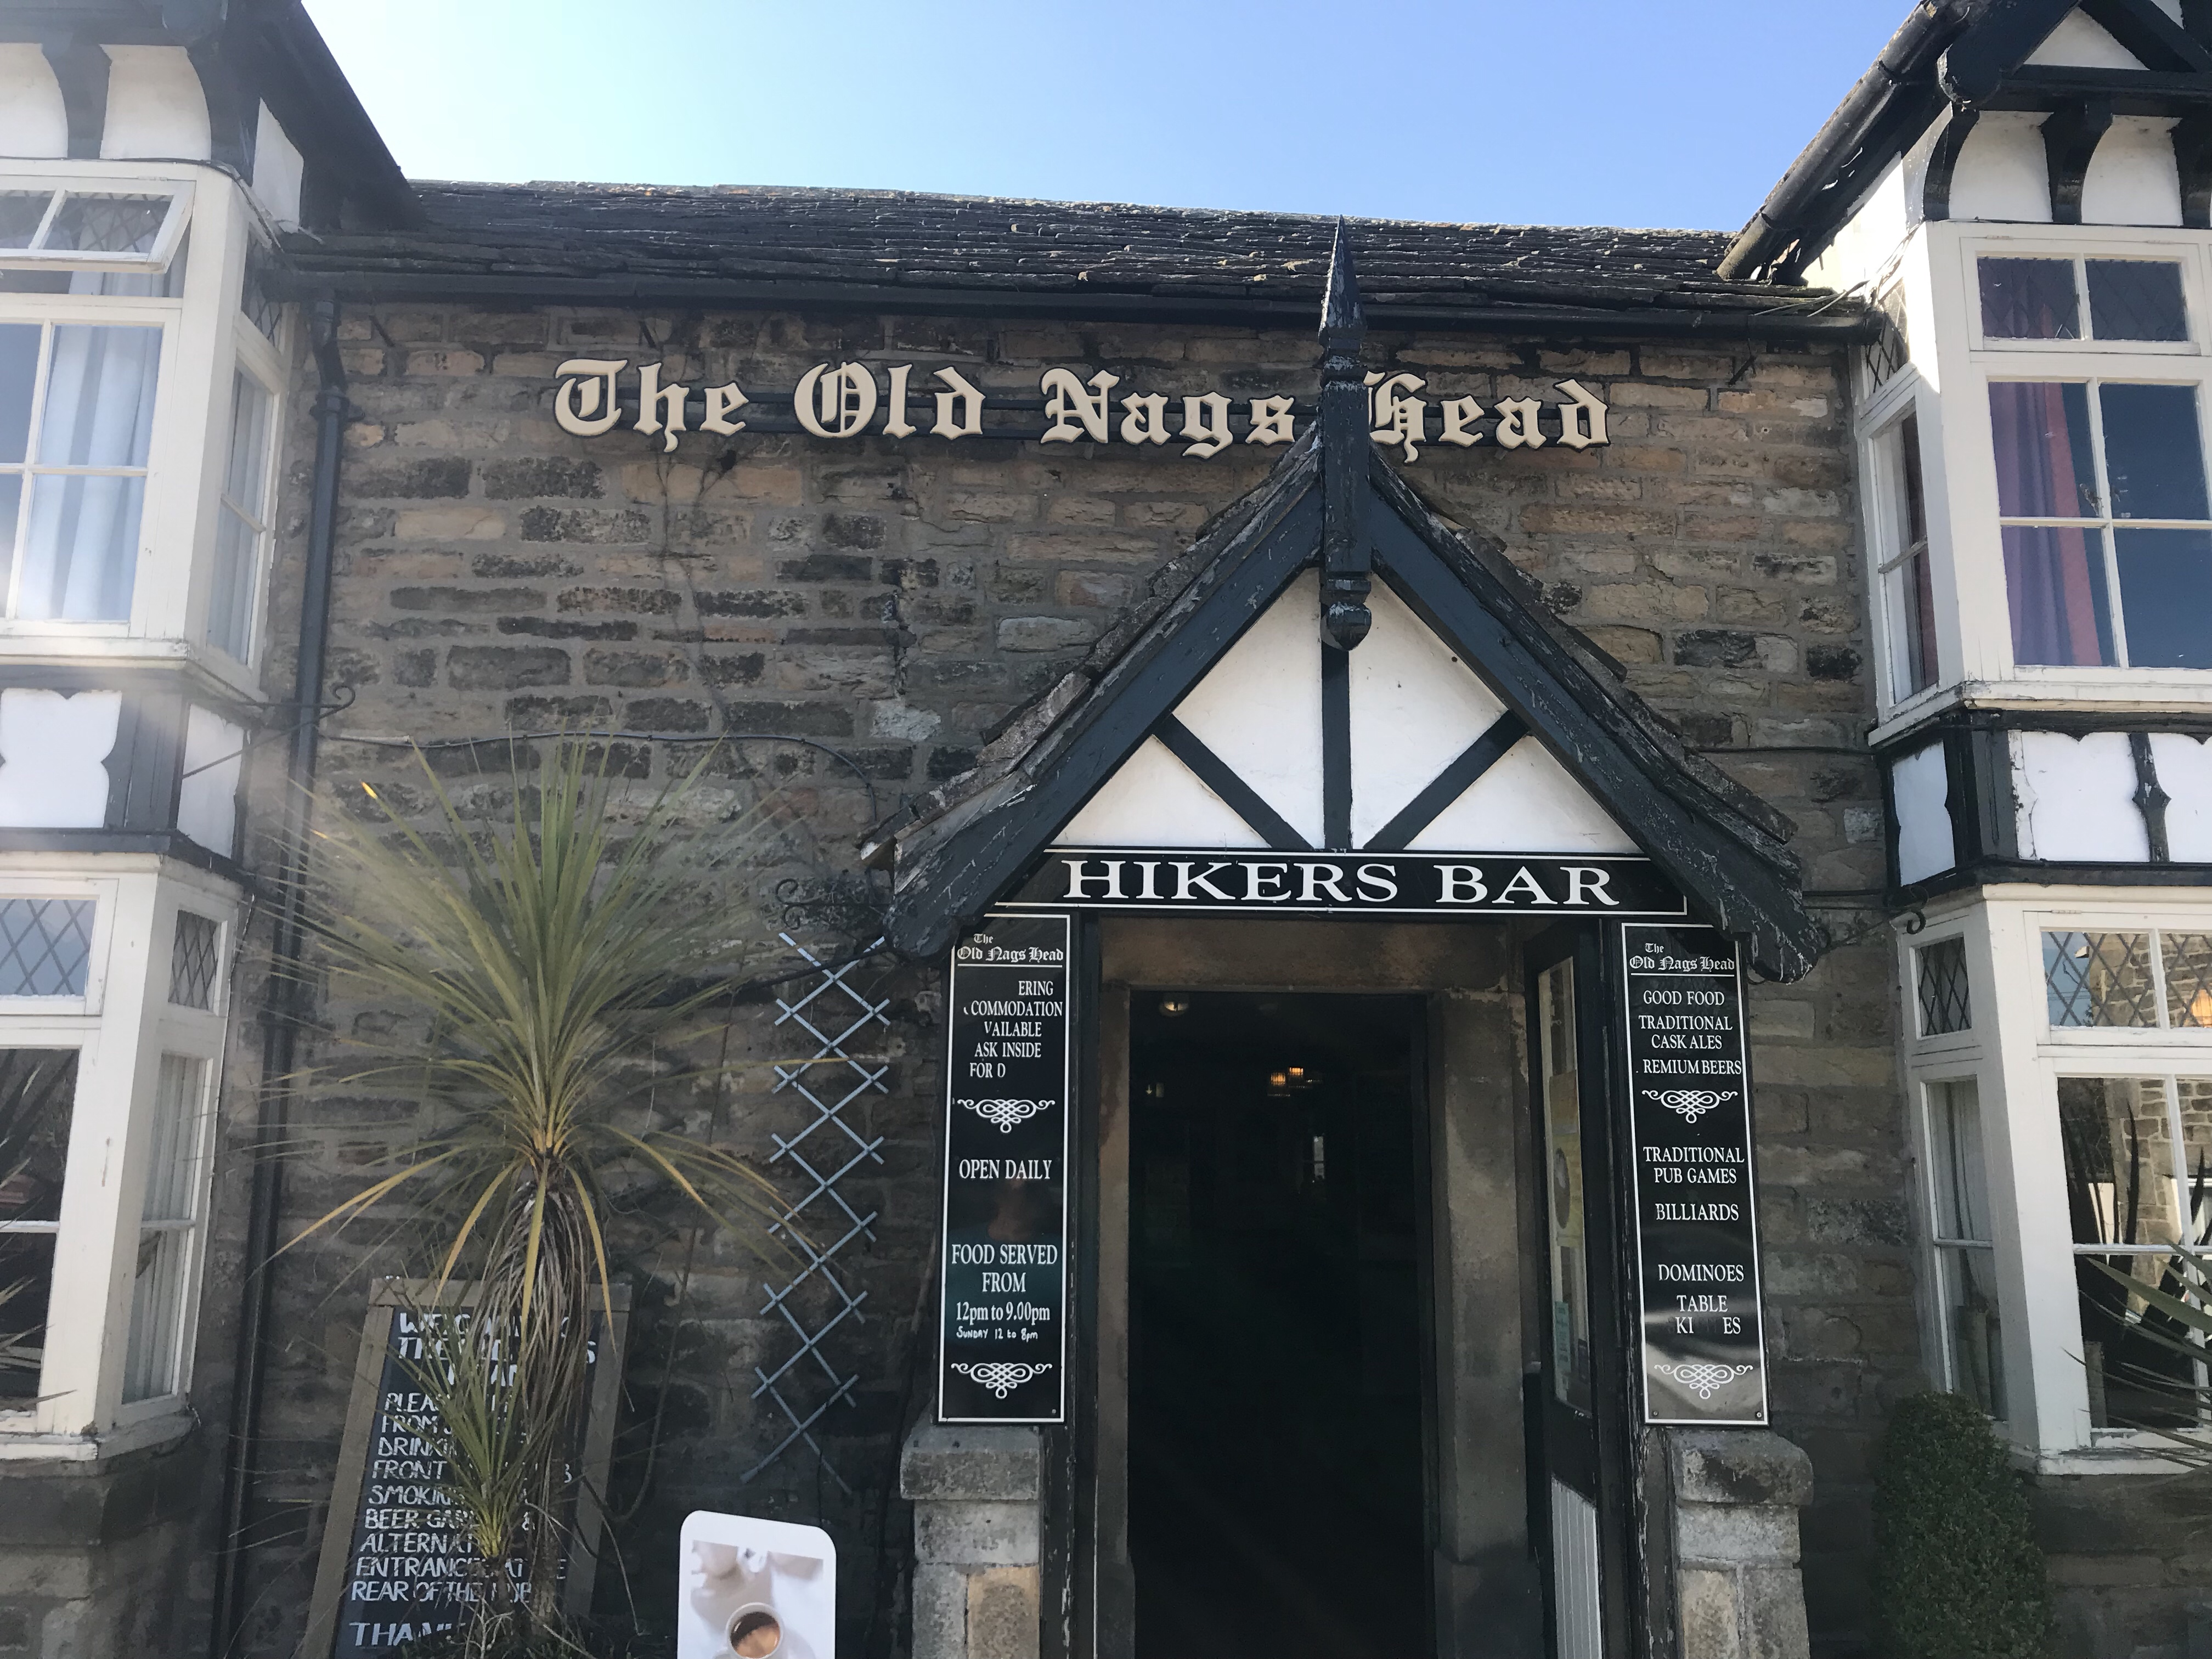 Great food and I'm assured great beer at the Old Nags Head in Edale...